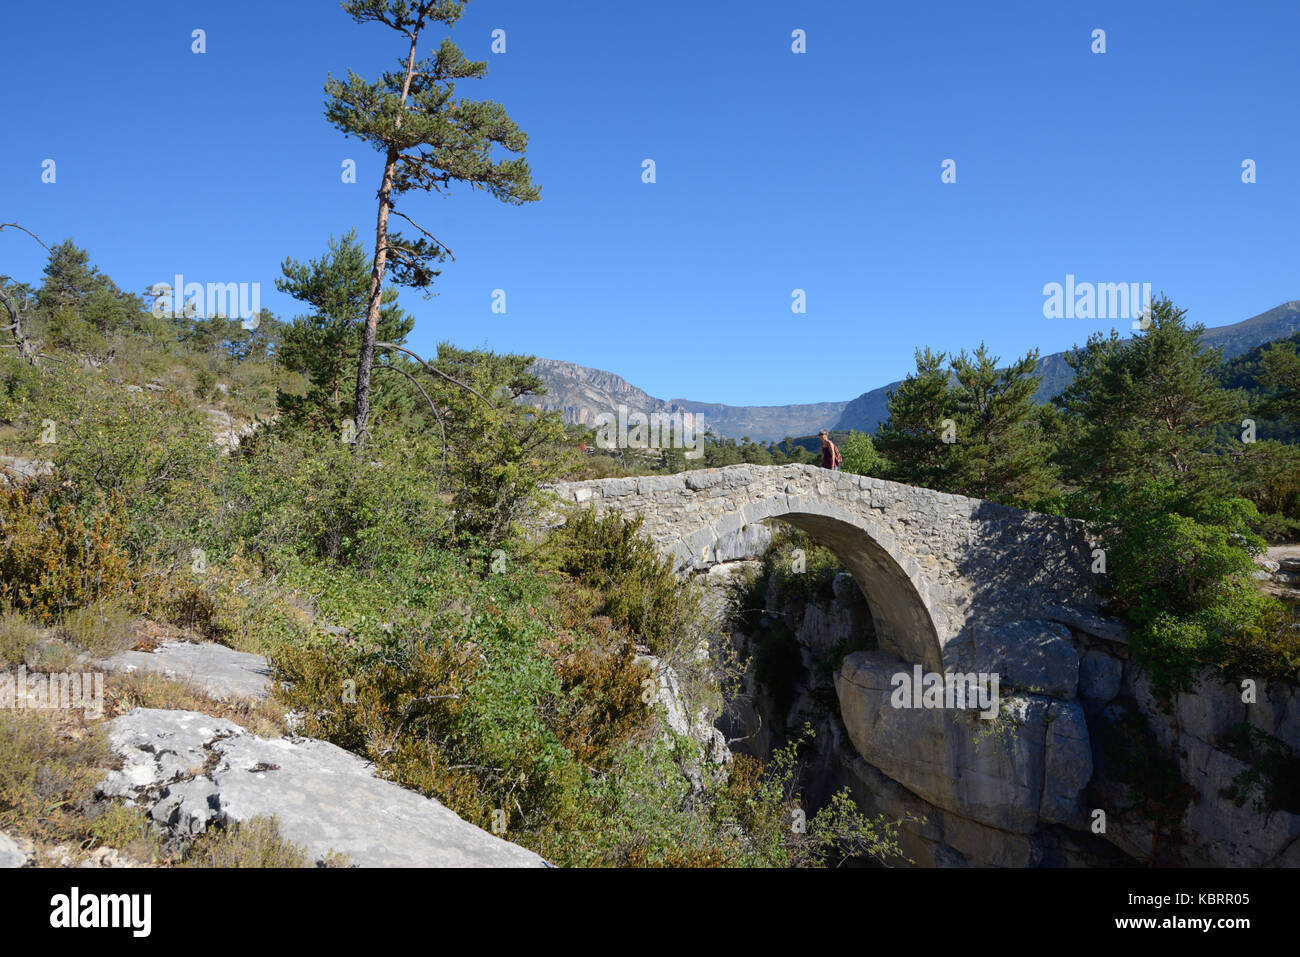 Favori Humpback Bridge Stock Photos & Humpback Bridge Stock Images - Alamy RI18